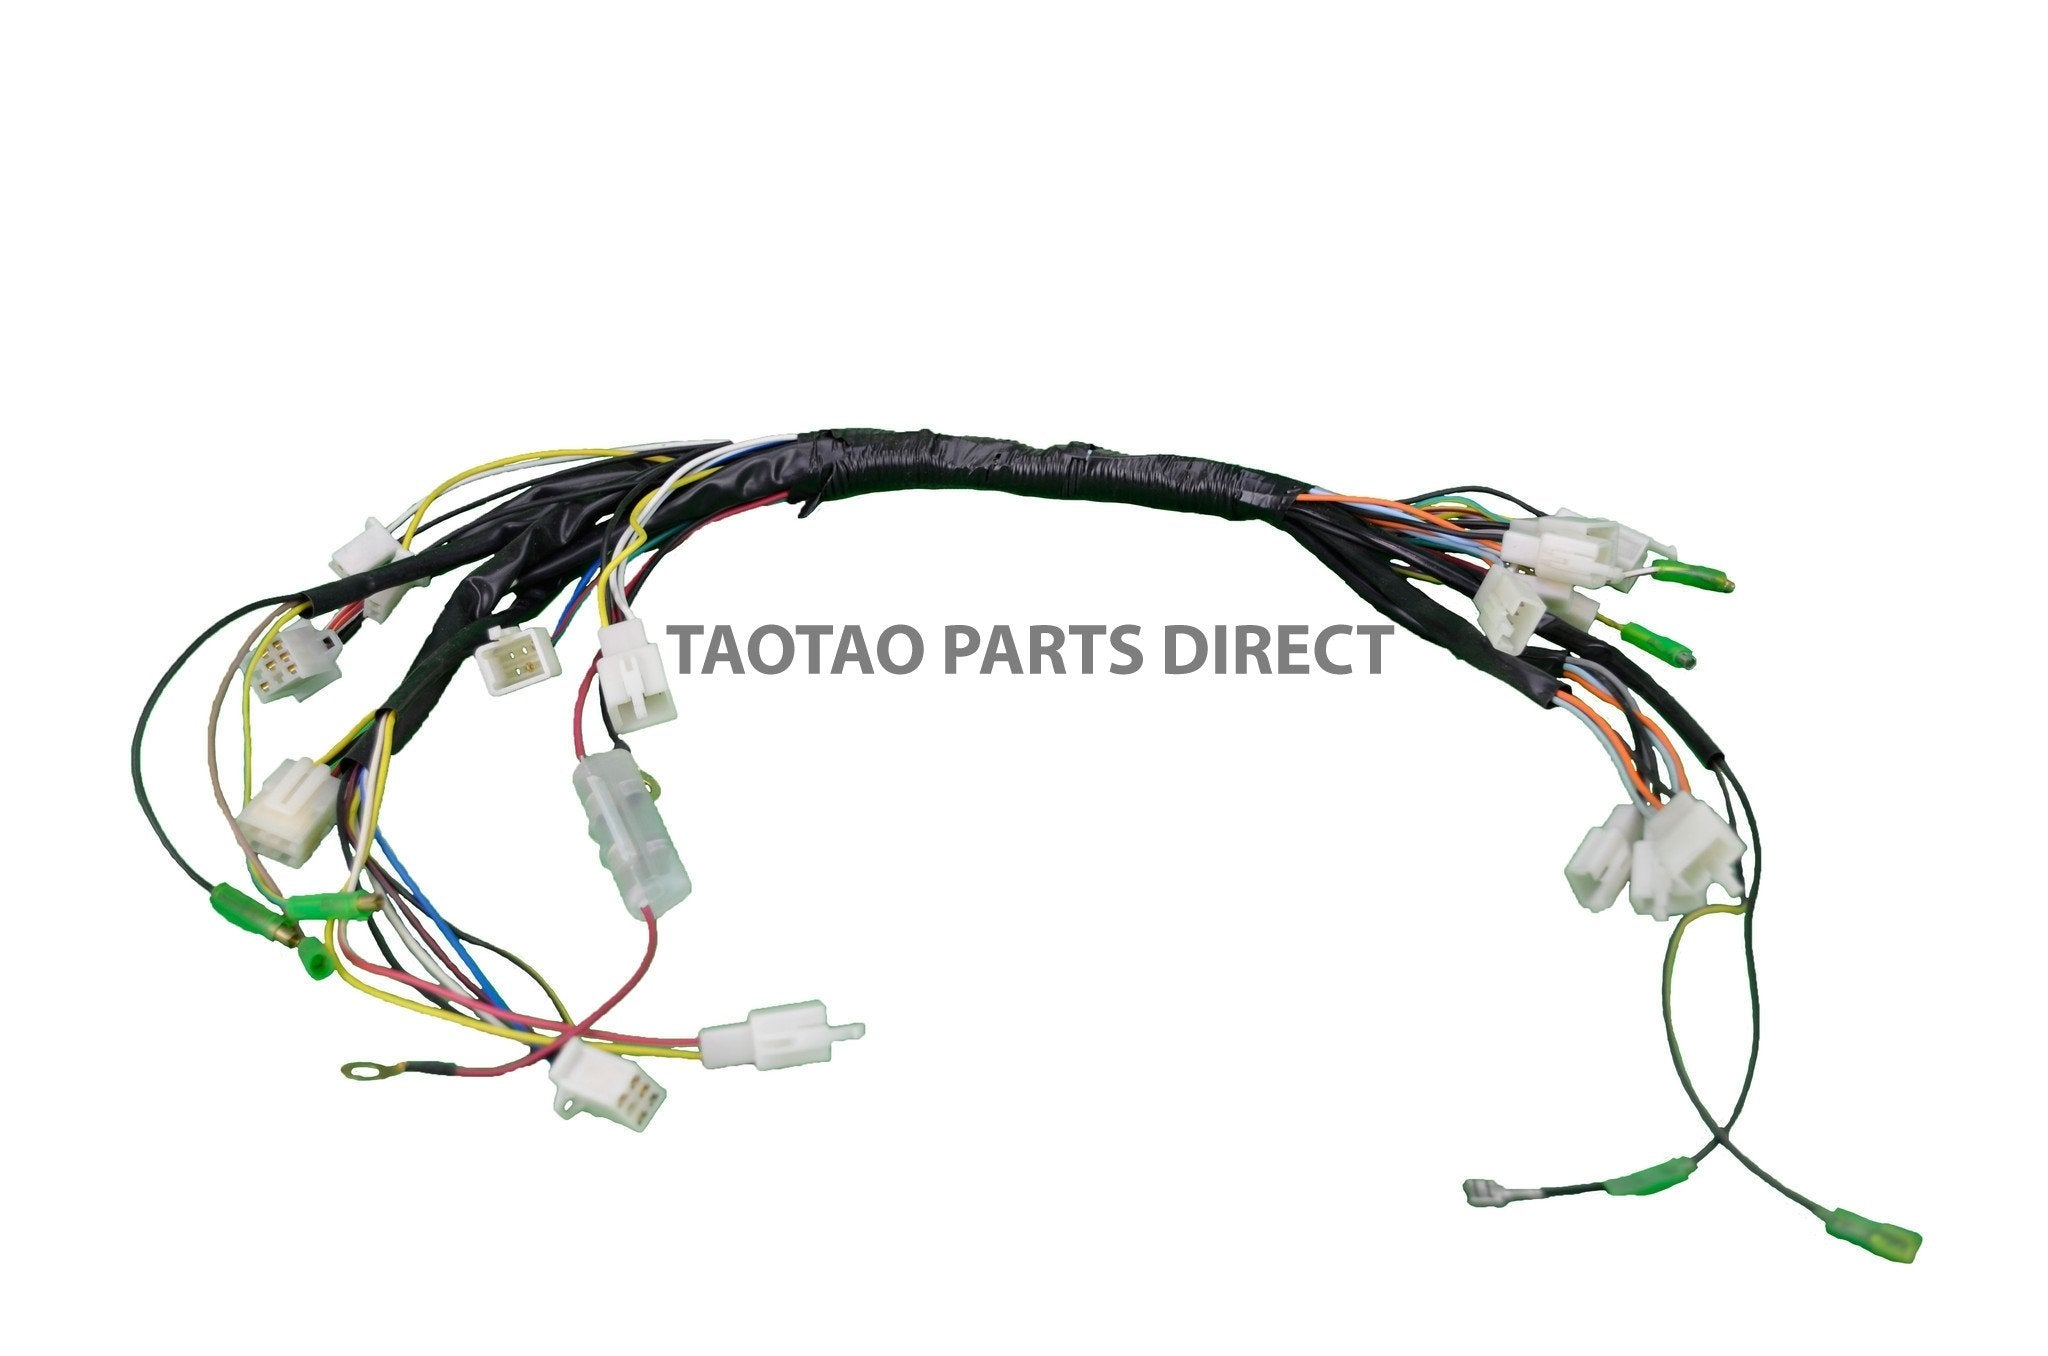 ATA135D Wire Harness #15 - TaoTaoPartsDirect.com